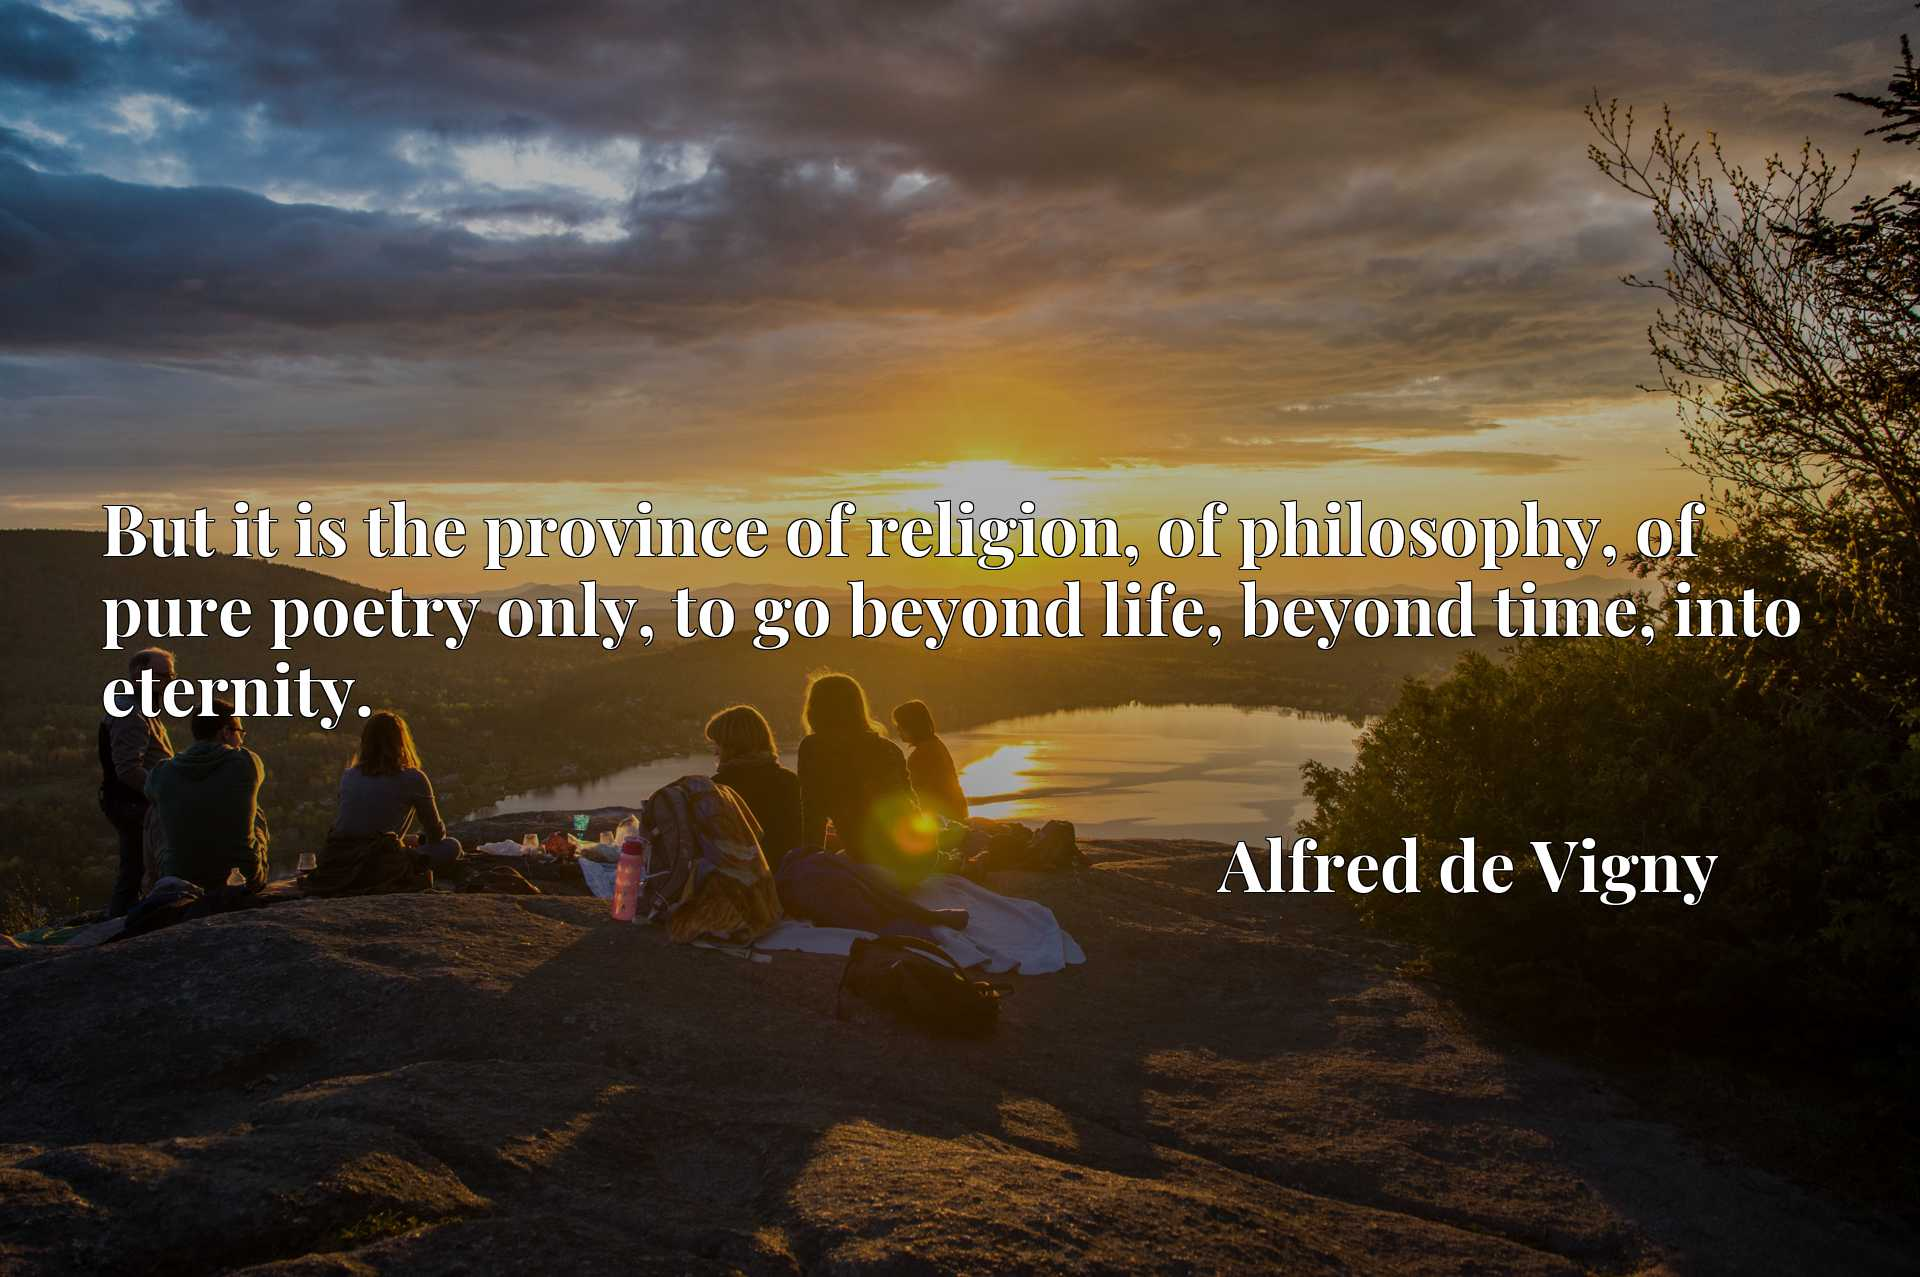 But it is the province of religion, of philosophy, of pure poetry only, to go beyond life, beyond time, into eternity.